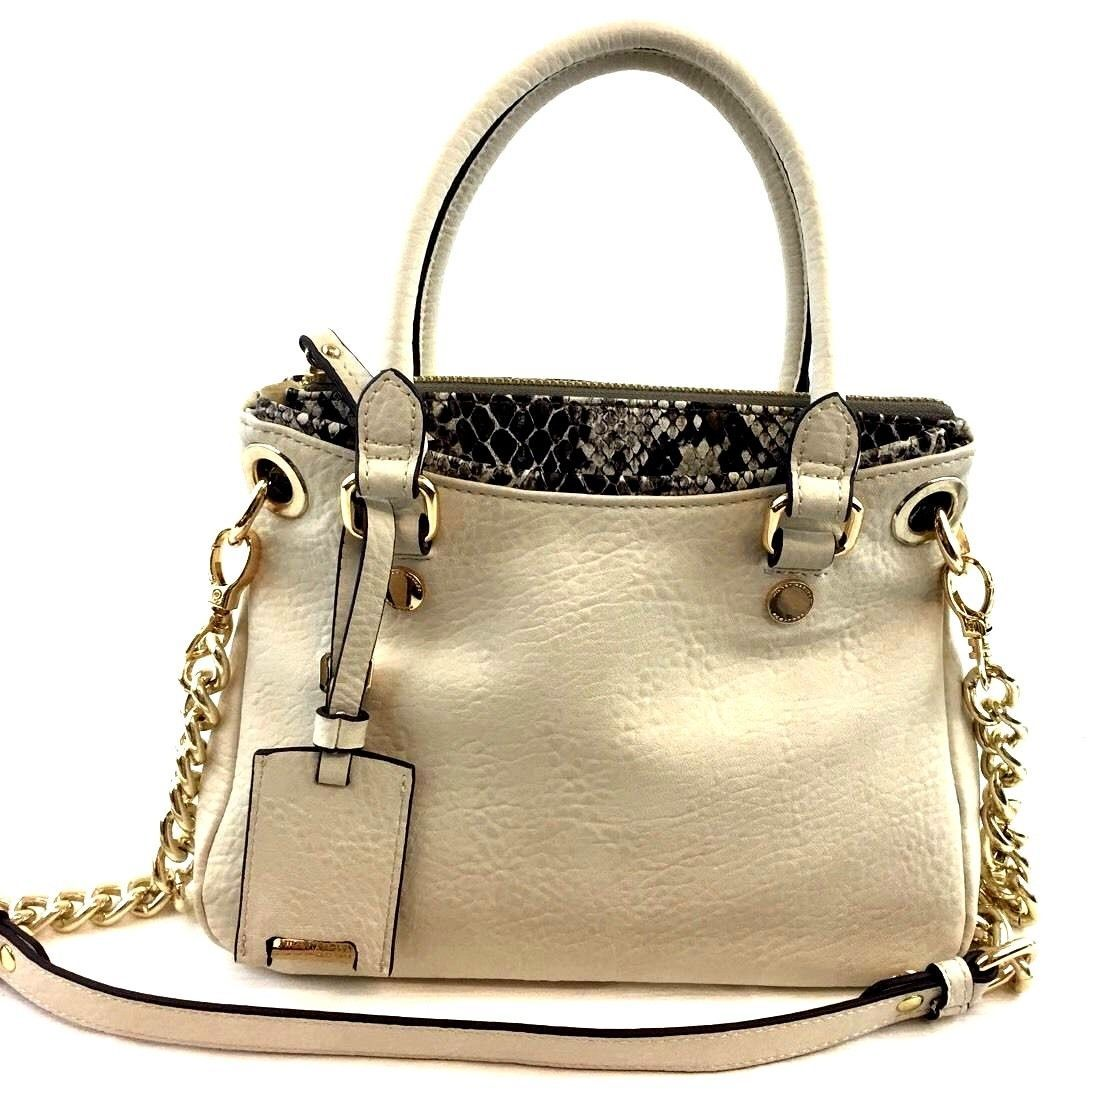 Hilary Radley New York This Satchel